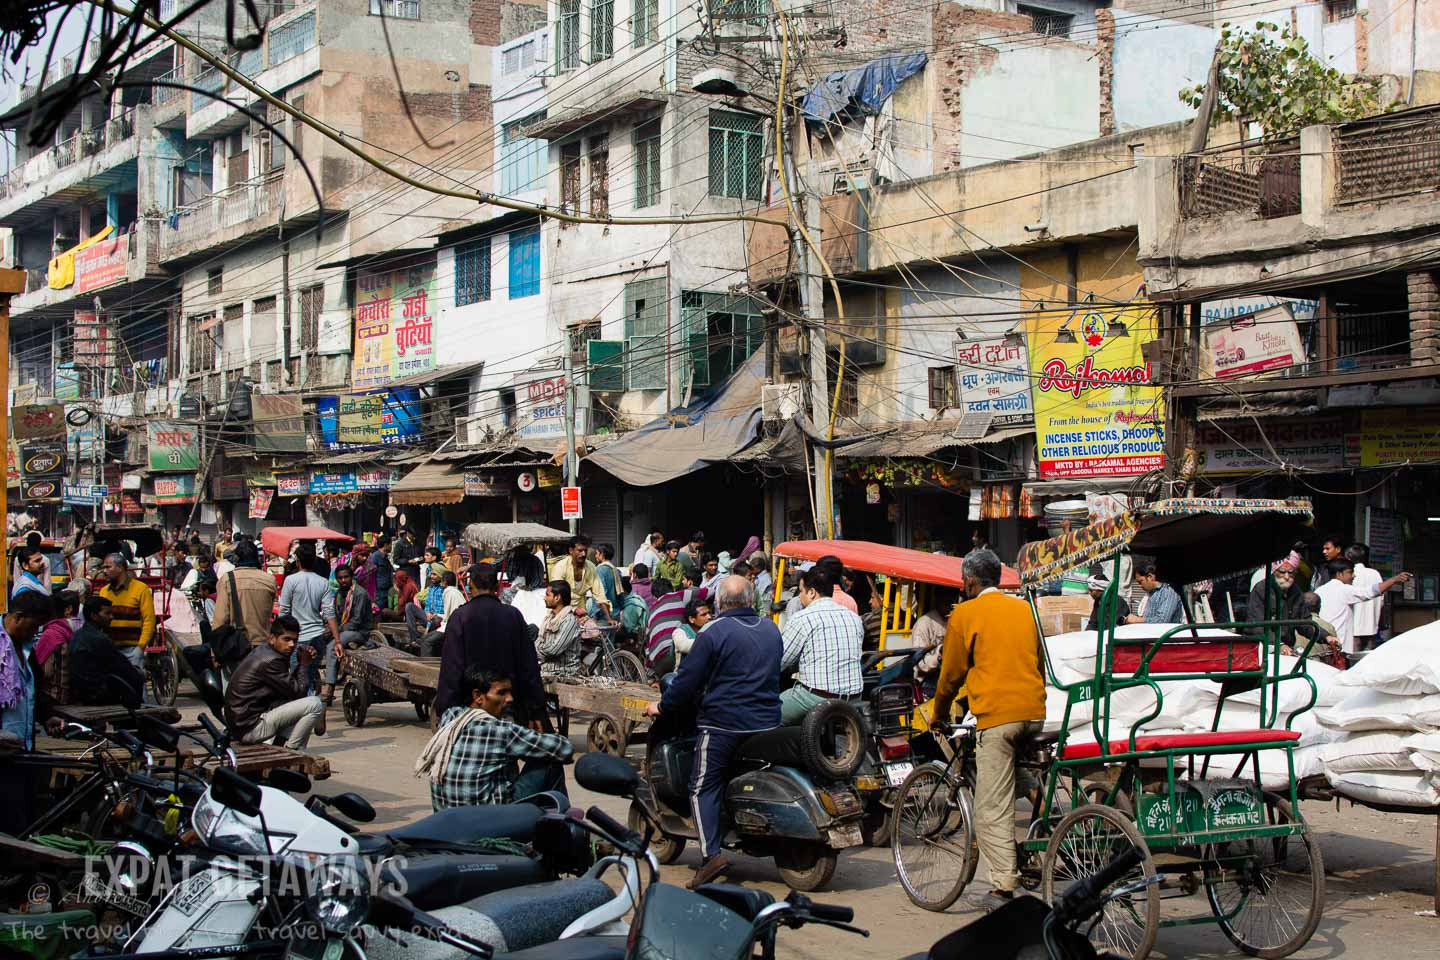 The streets of Delhi are chaotic! Expat Getaways, 5 Nights Golden Triangle, Delhi, Jaipur & Agra, India.